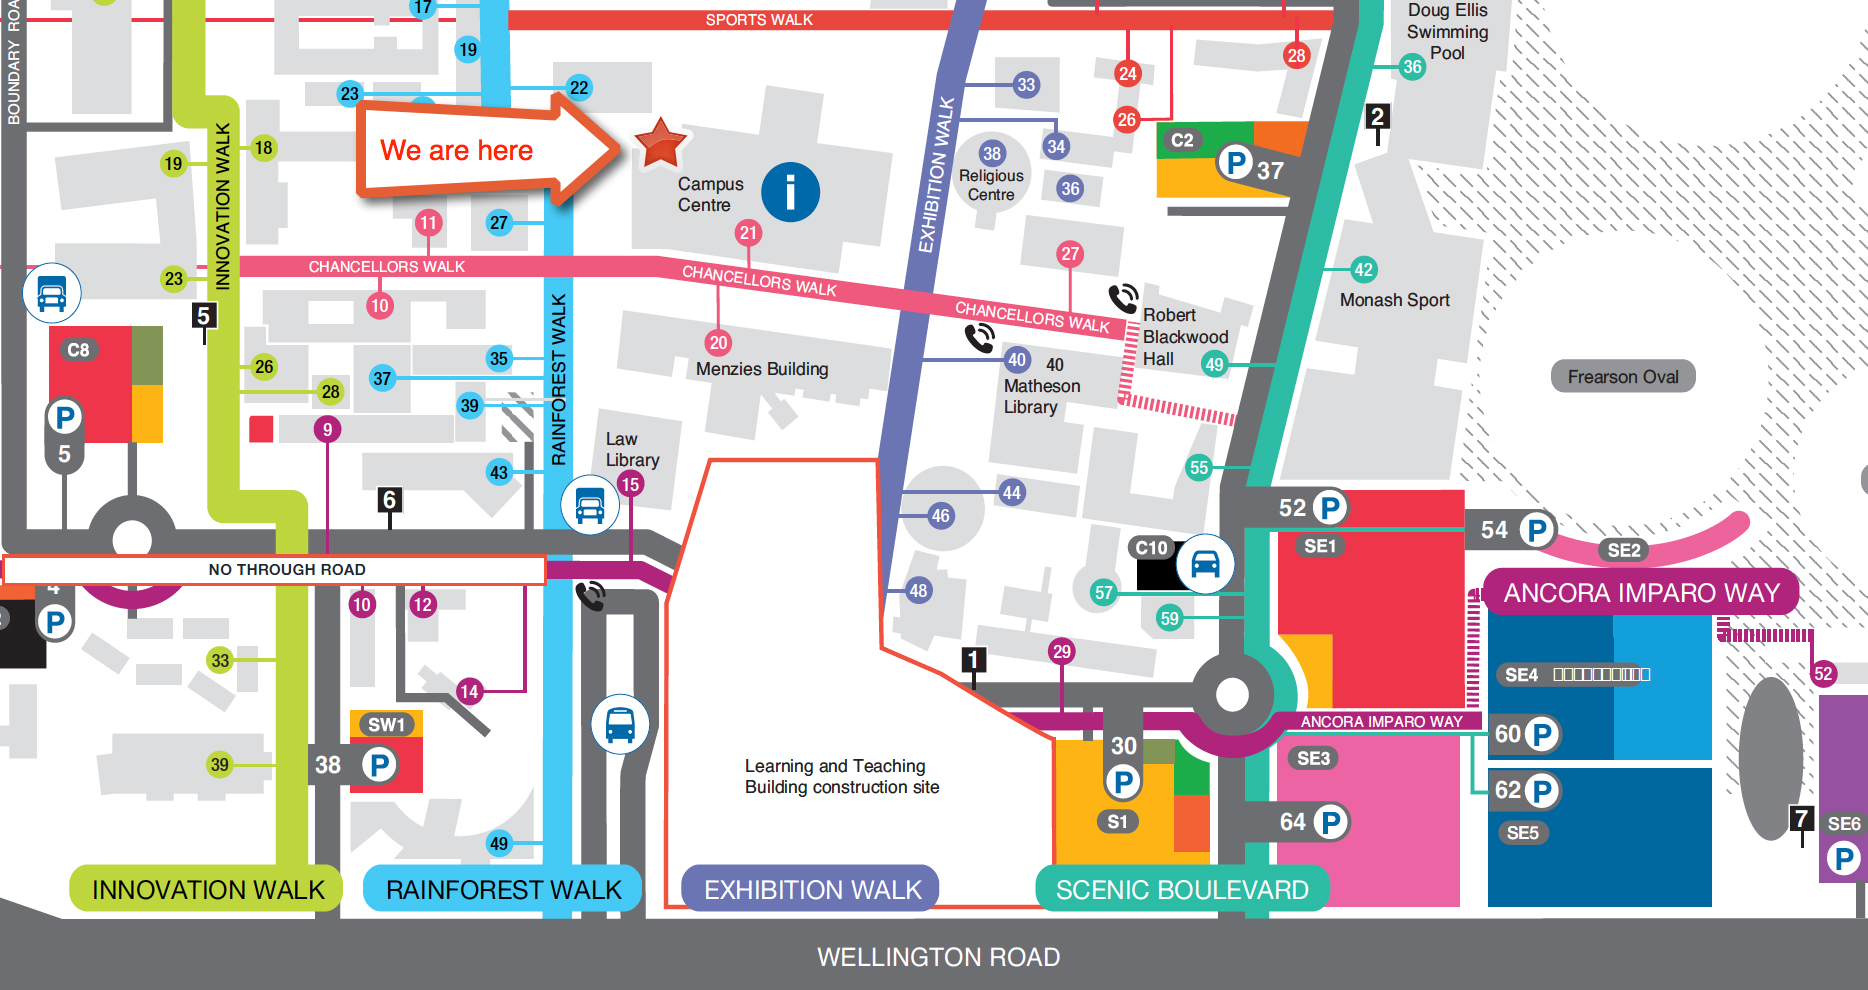 Map of Clayton campus showing dental surgery location in Campus Centre